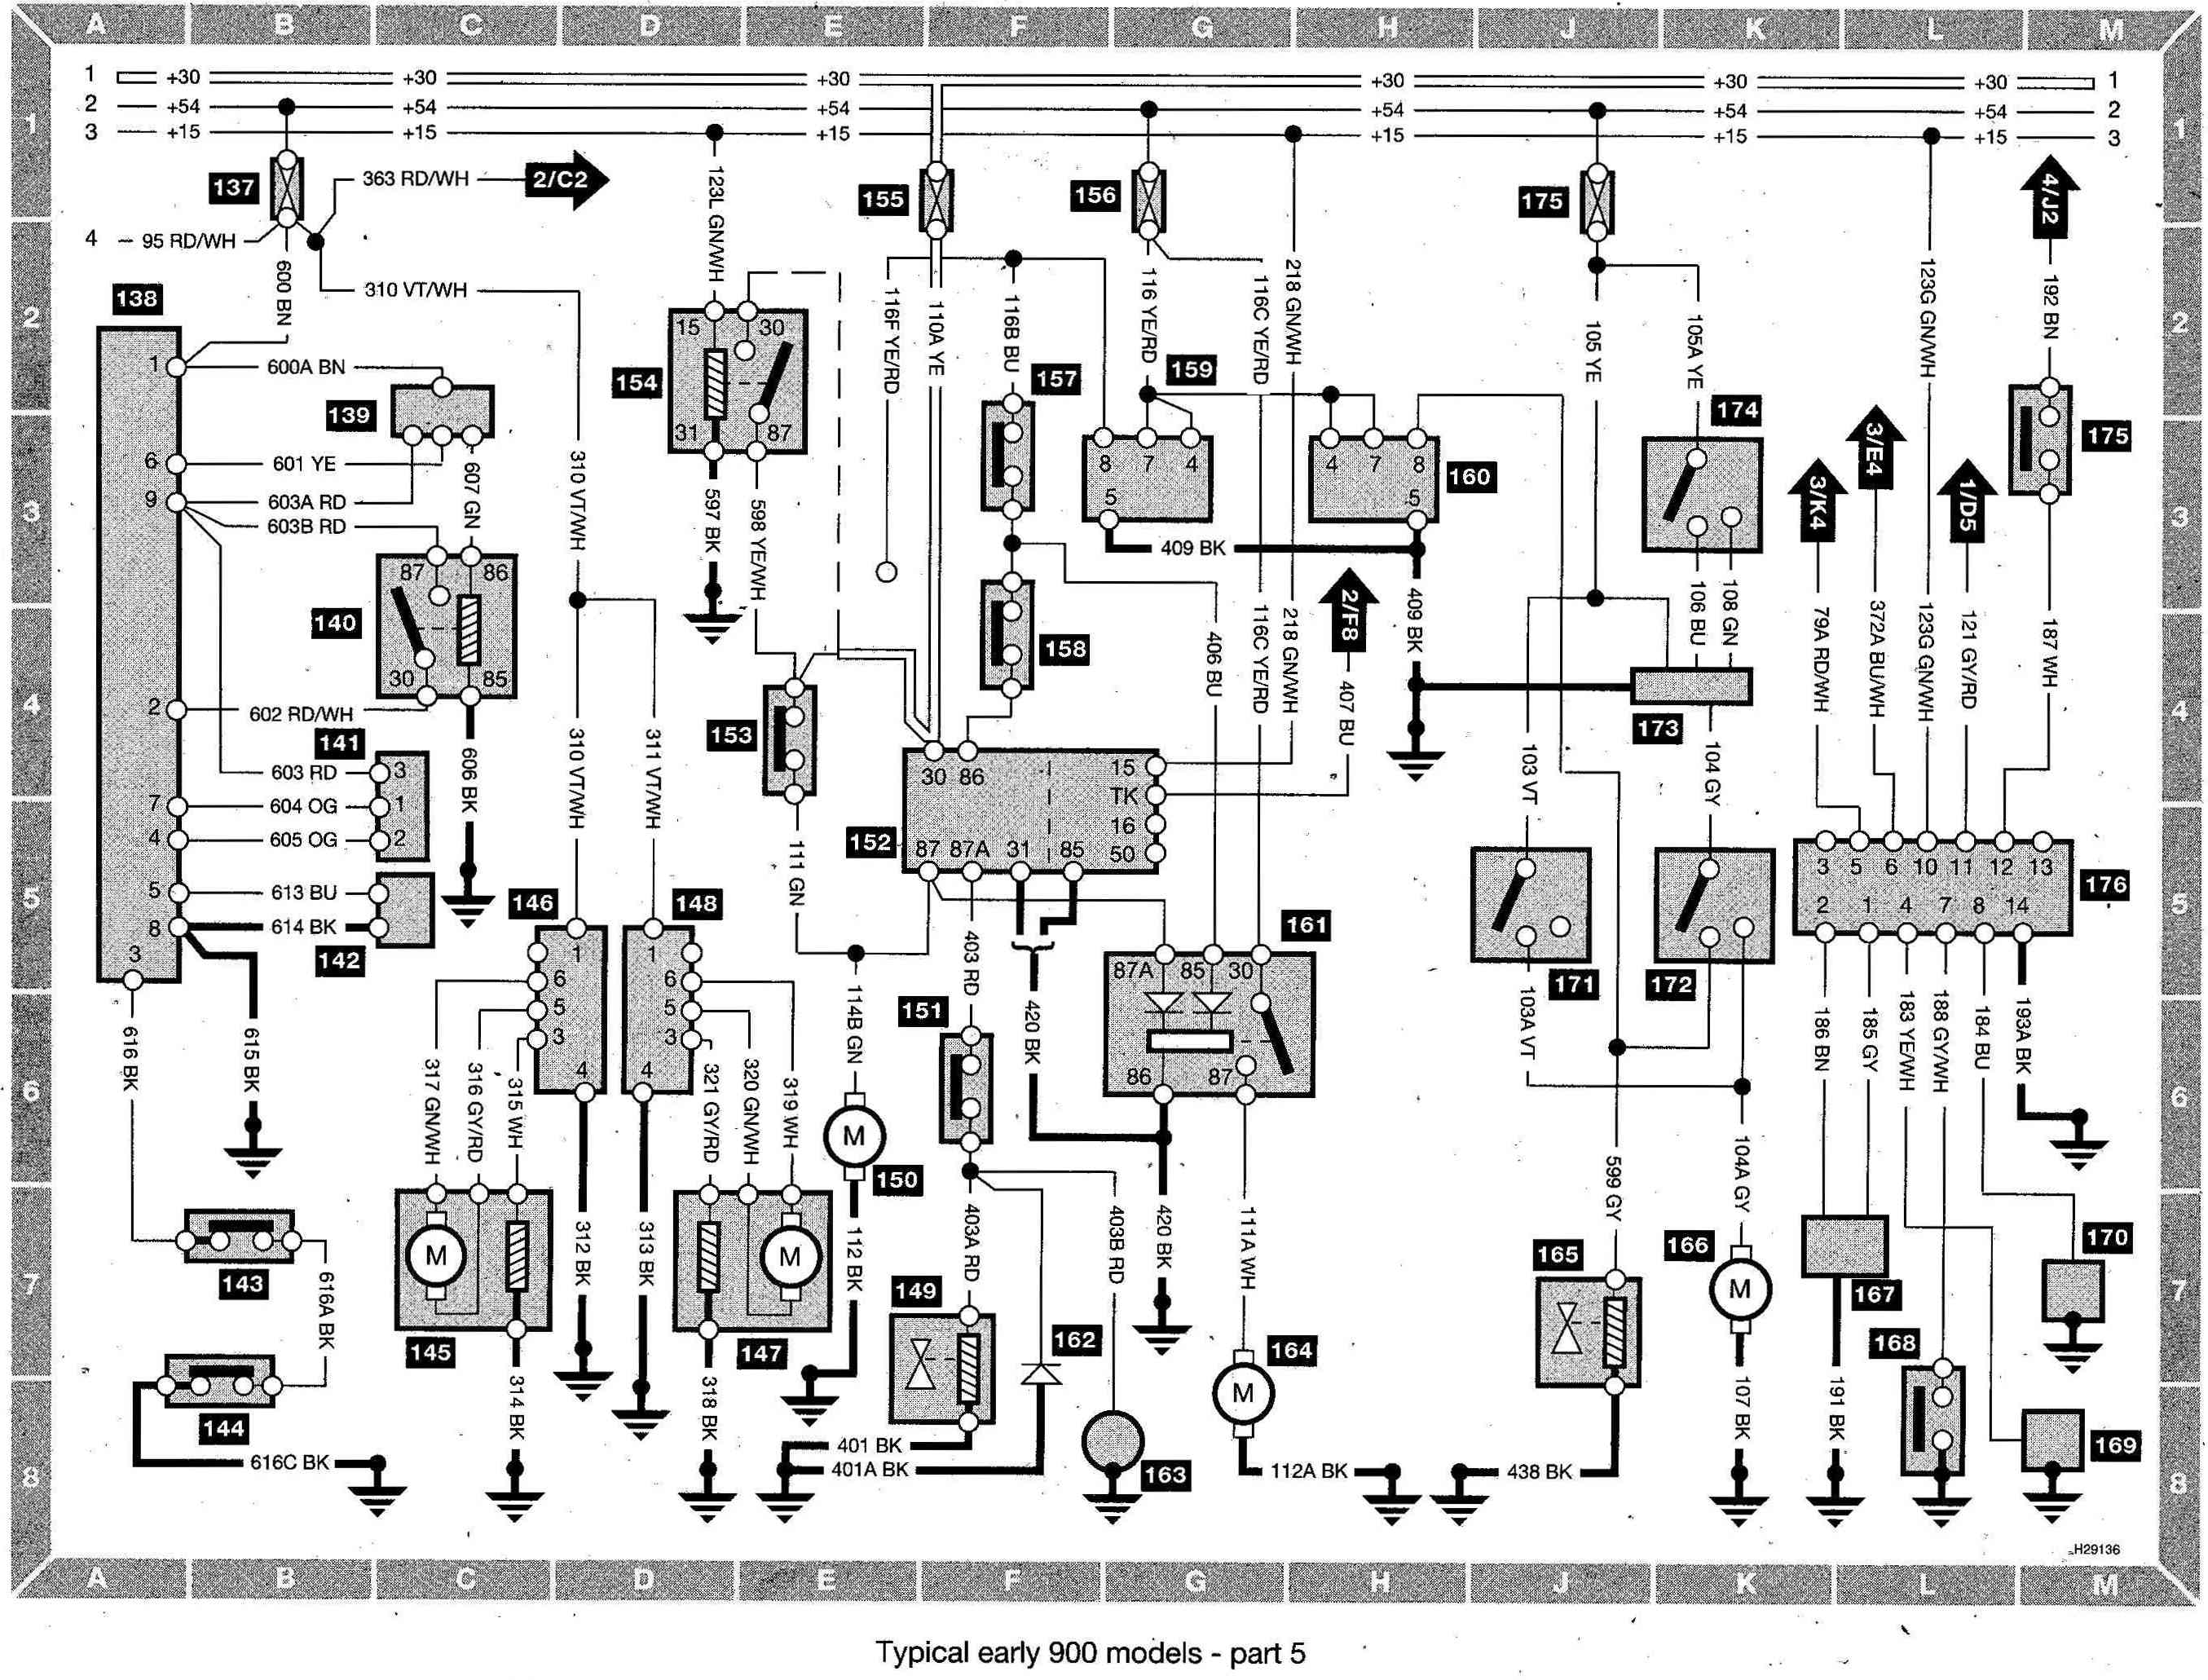 Wiring Harness 93 Saab 900 Ignition Diagram Will Be A Thing On 1993 Mazda Fuse Box Free Engine Image For User 84